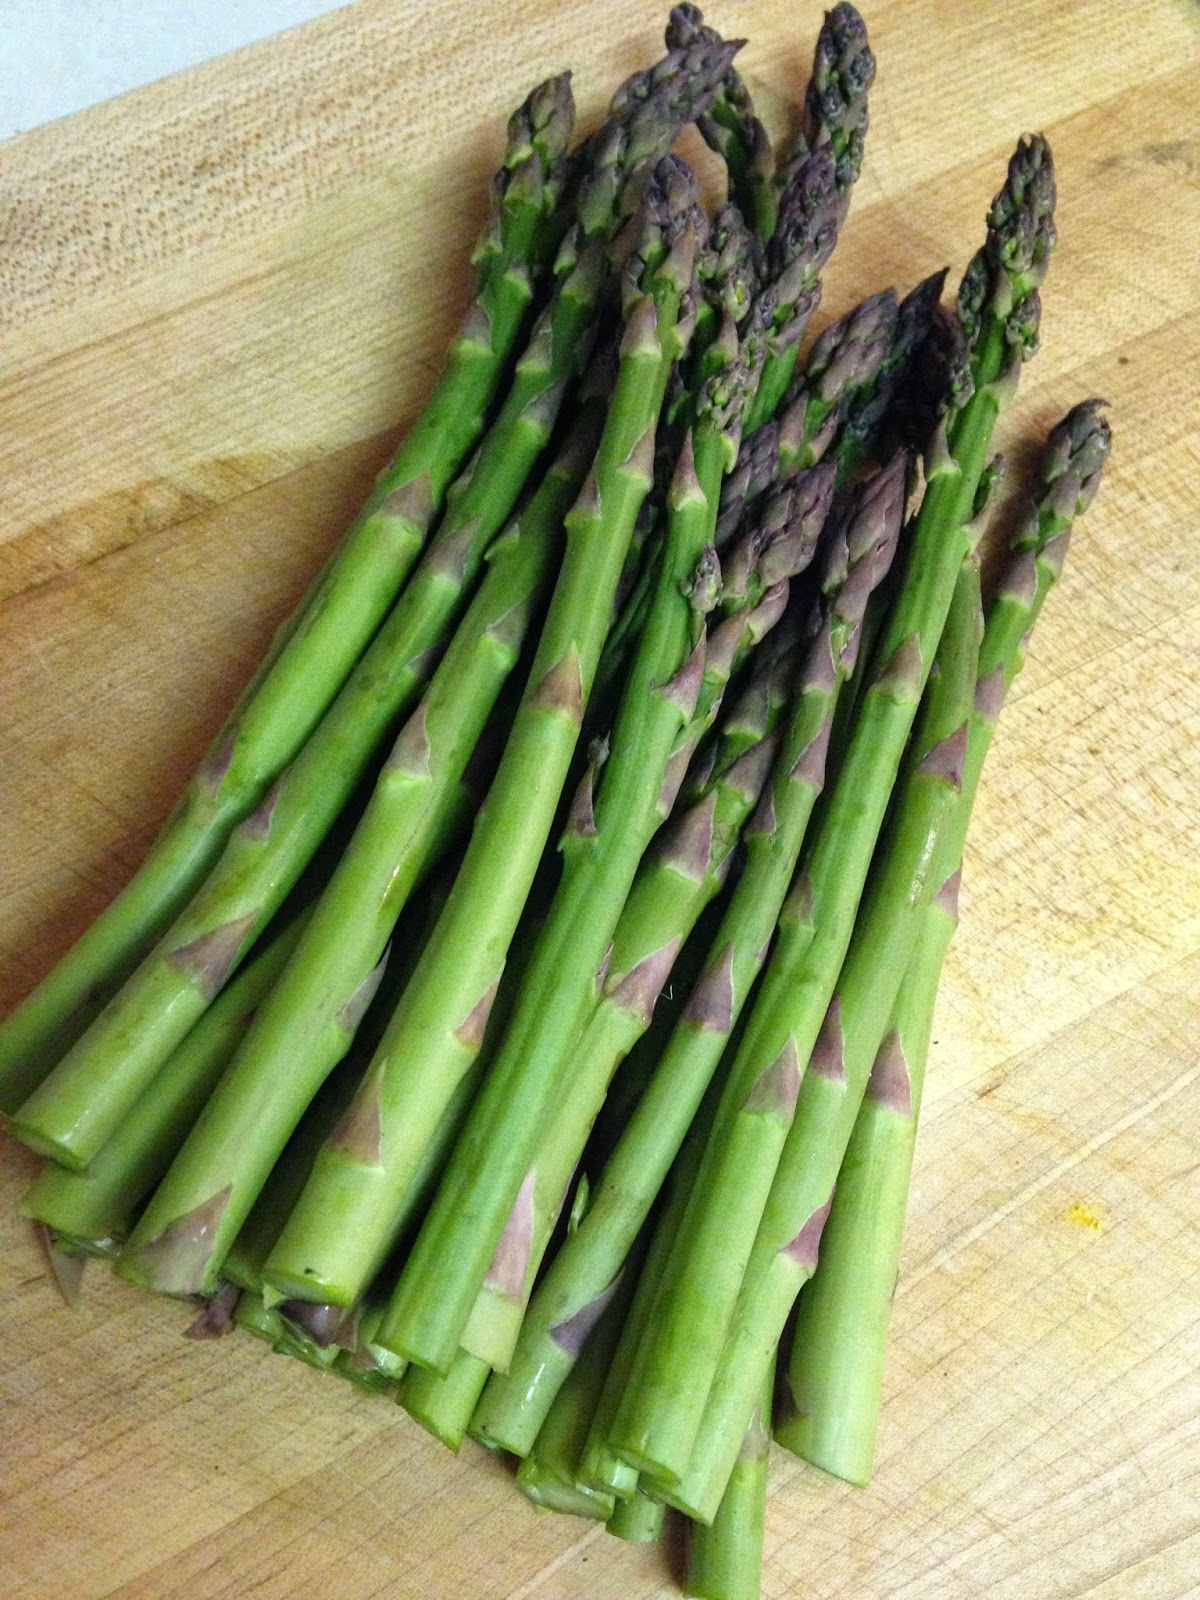 Bring A Large Pot Of Water To A Boil Add Asparagus And Cook Until Crisp Tender About 3 Minutes Drain And Rinse With Cold Water Then Pat Dry